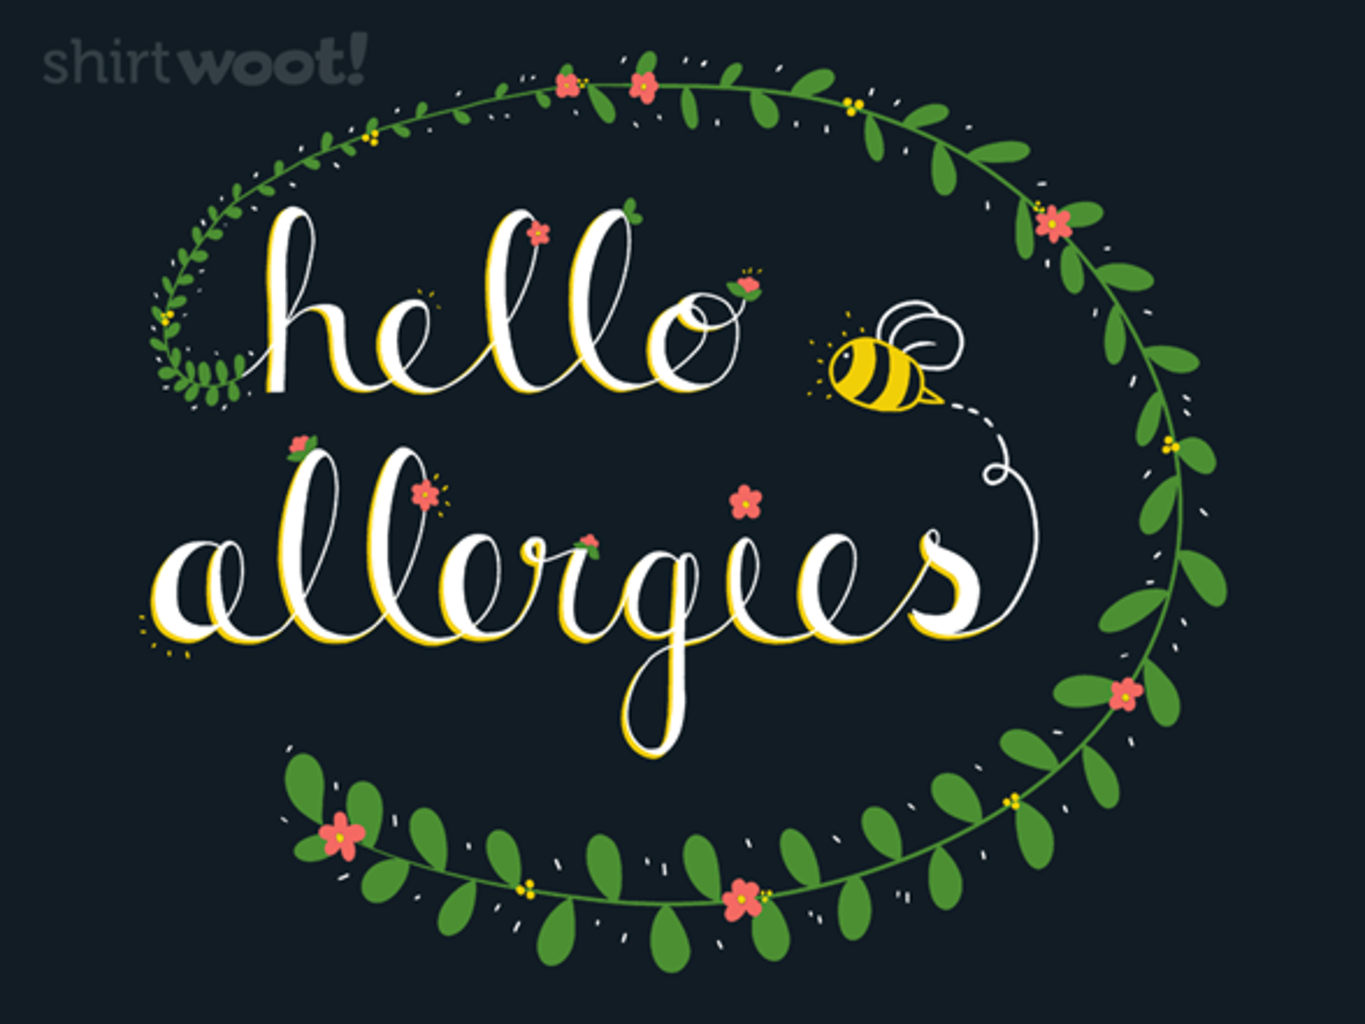 Woot!: Hello Allergies